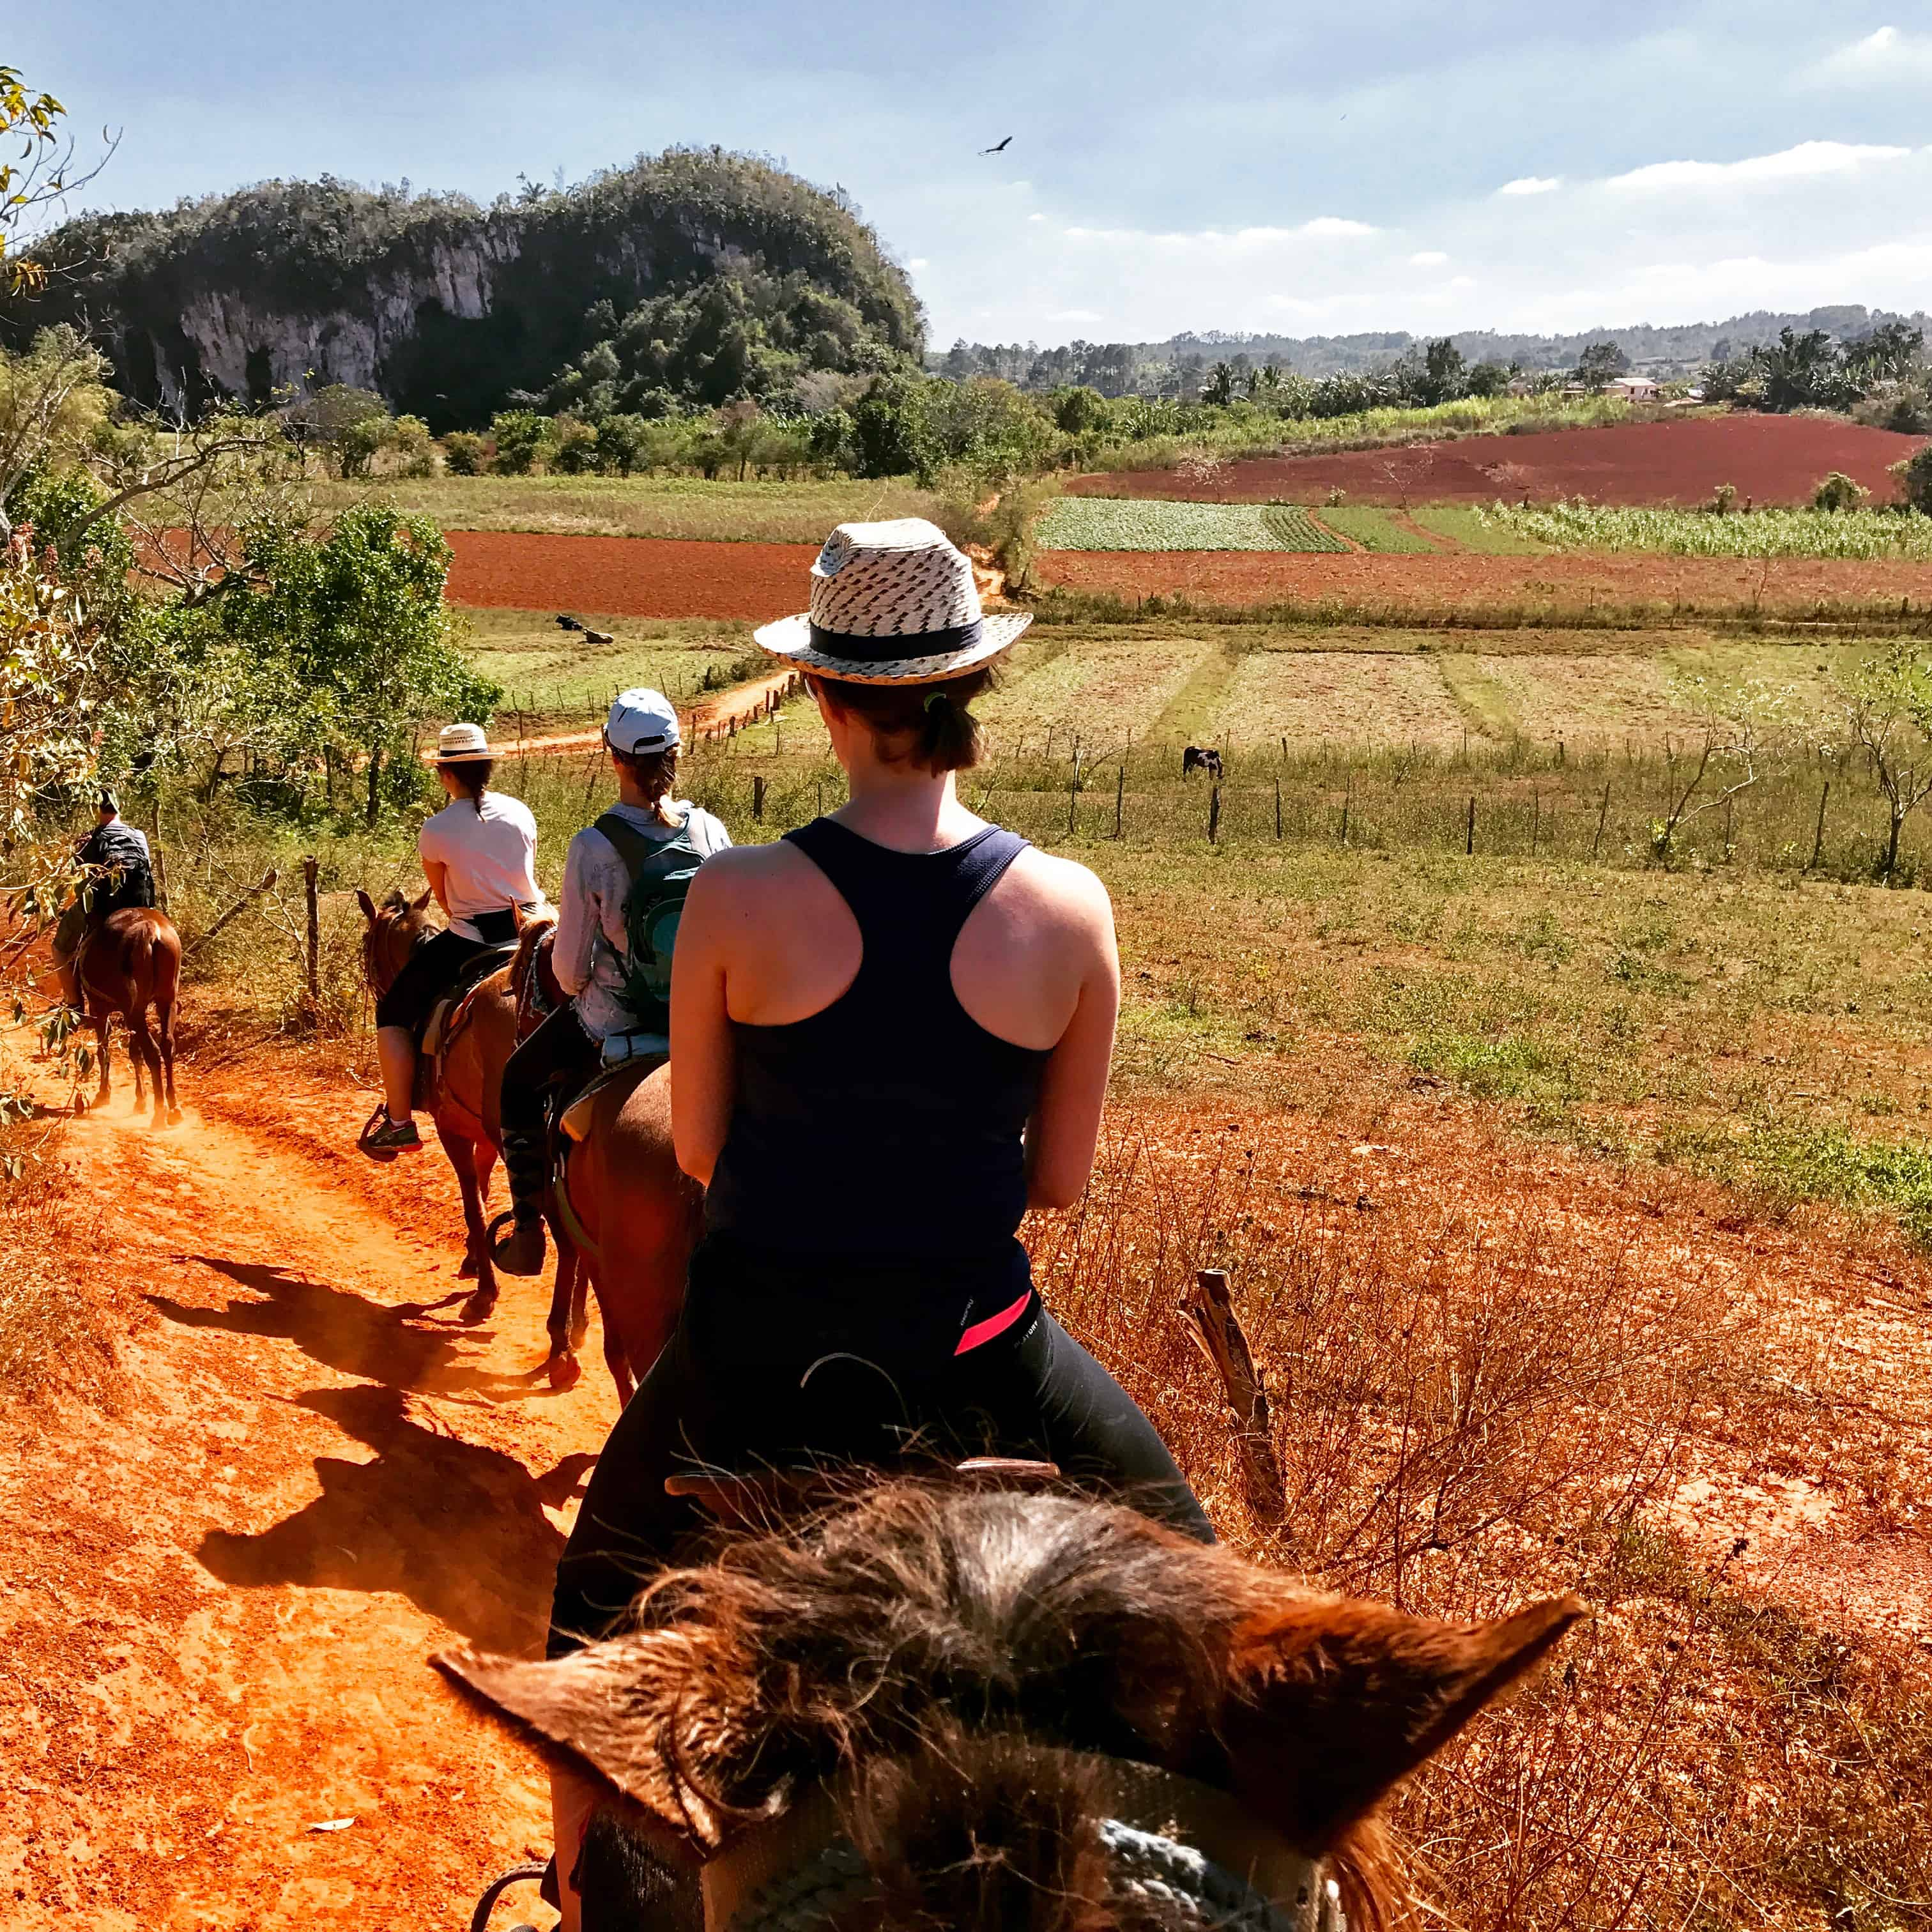 A 15 day itinerary in Cuba offers time for pursuits like horseriding into the countryside of Vinales.